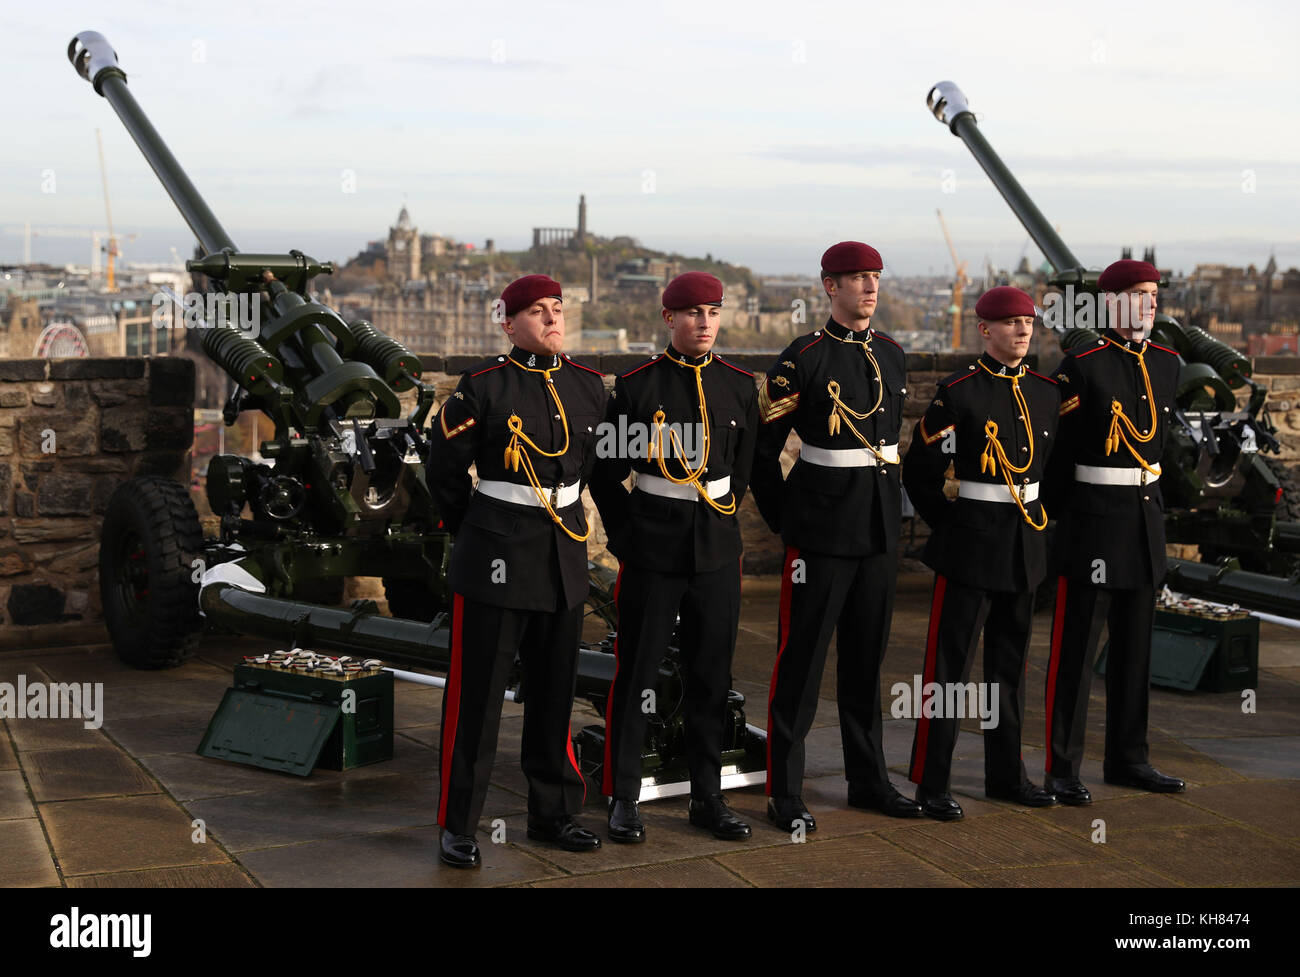 Members Of The 7th Parachute Regiment Royal Horse Artillery Airborne Gunners Wait Ahead A 21 Gun Salute Being Fired From Mills Mount Battery